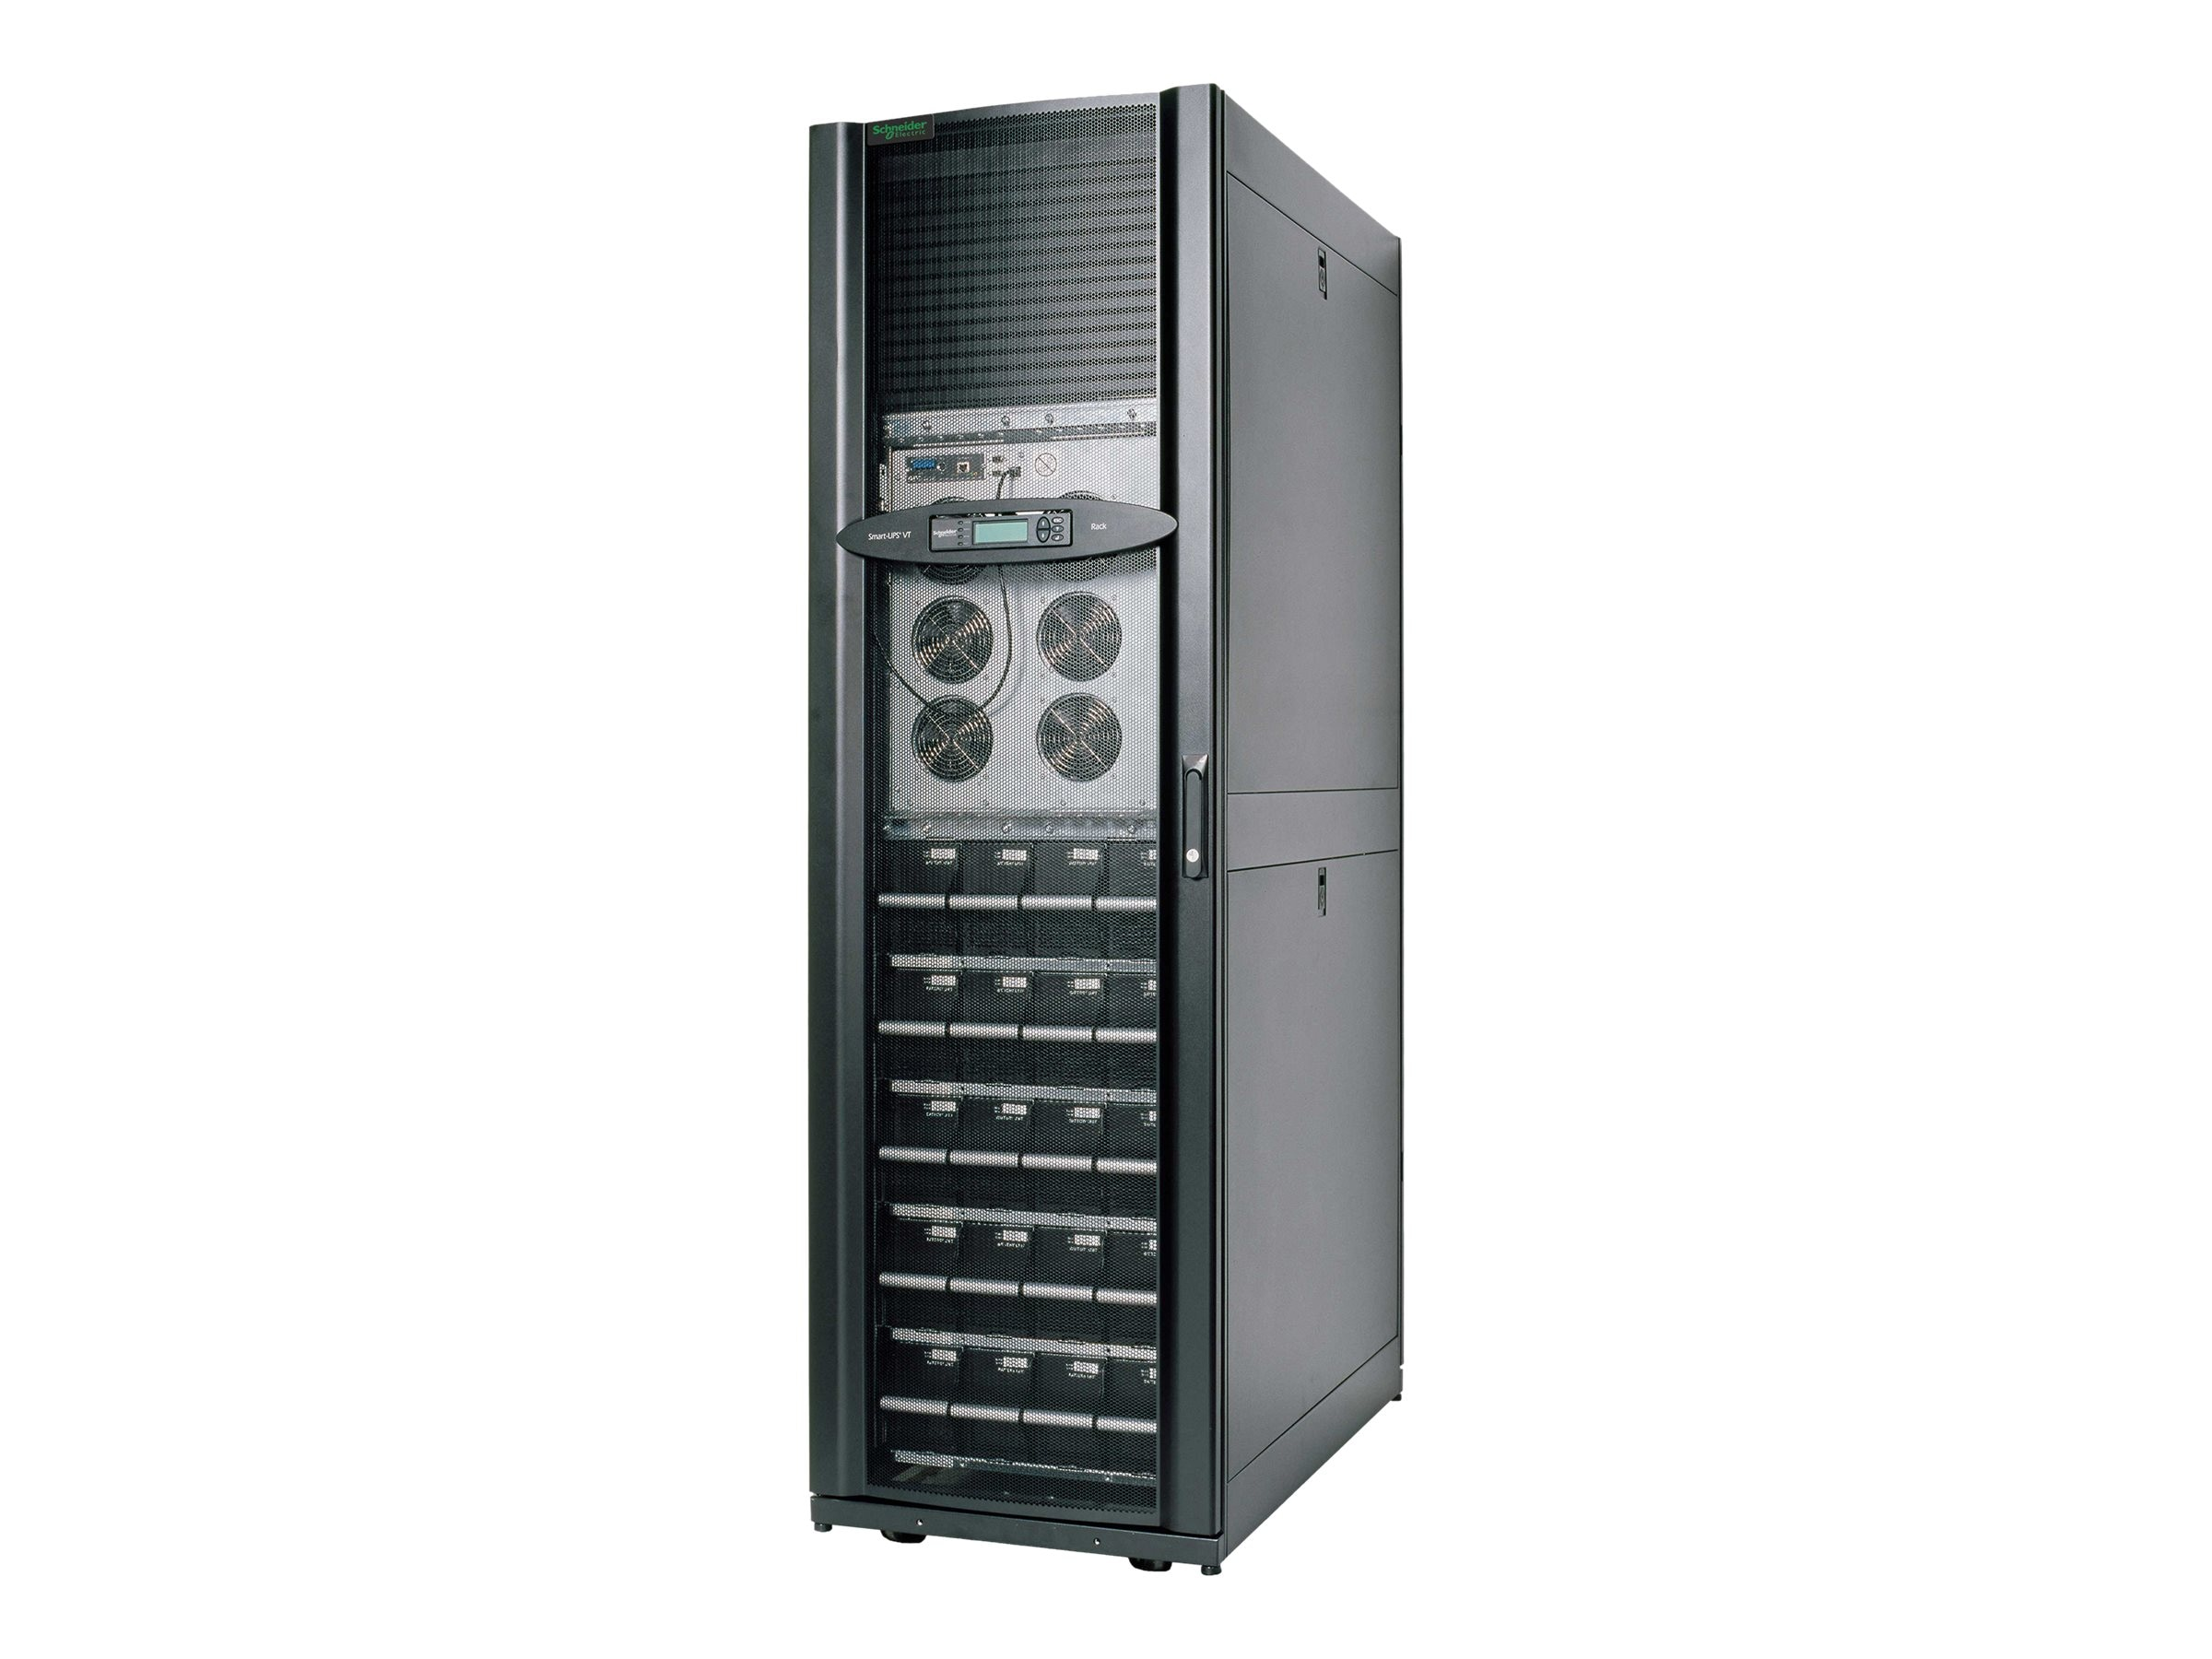 APC Smart-UPS VT 20kVA 208V Rack Mounted, (2) Battery Modules Expandable to (5), PDU, Startup